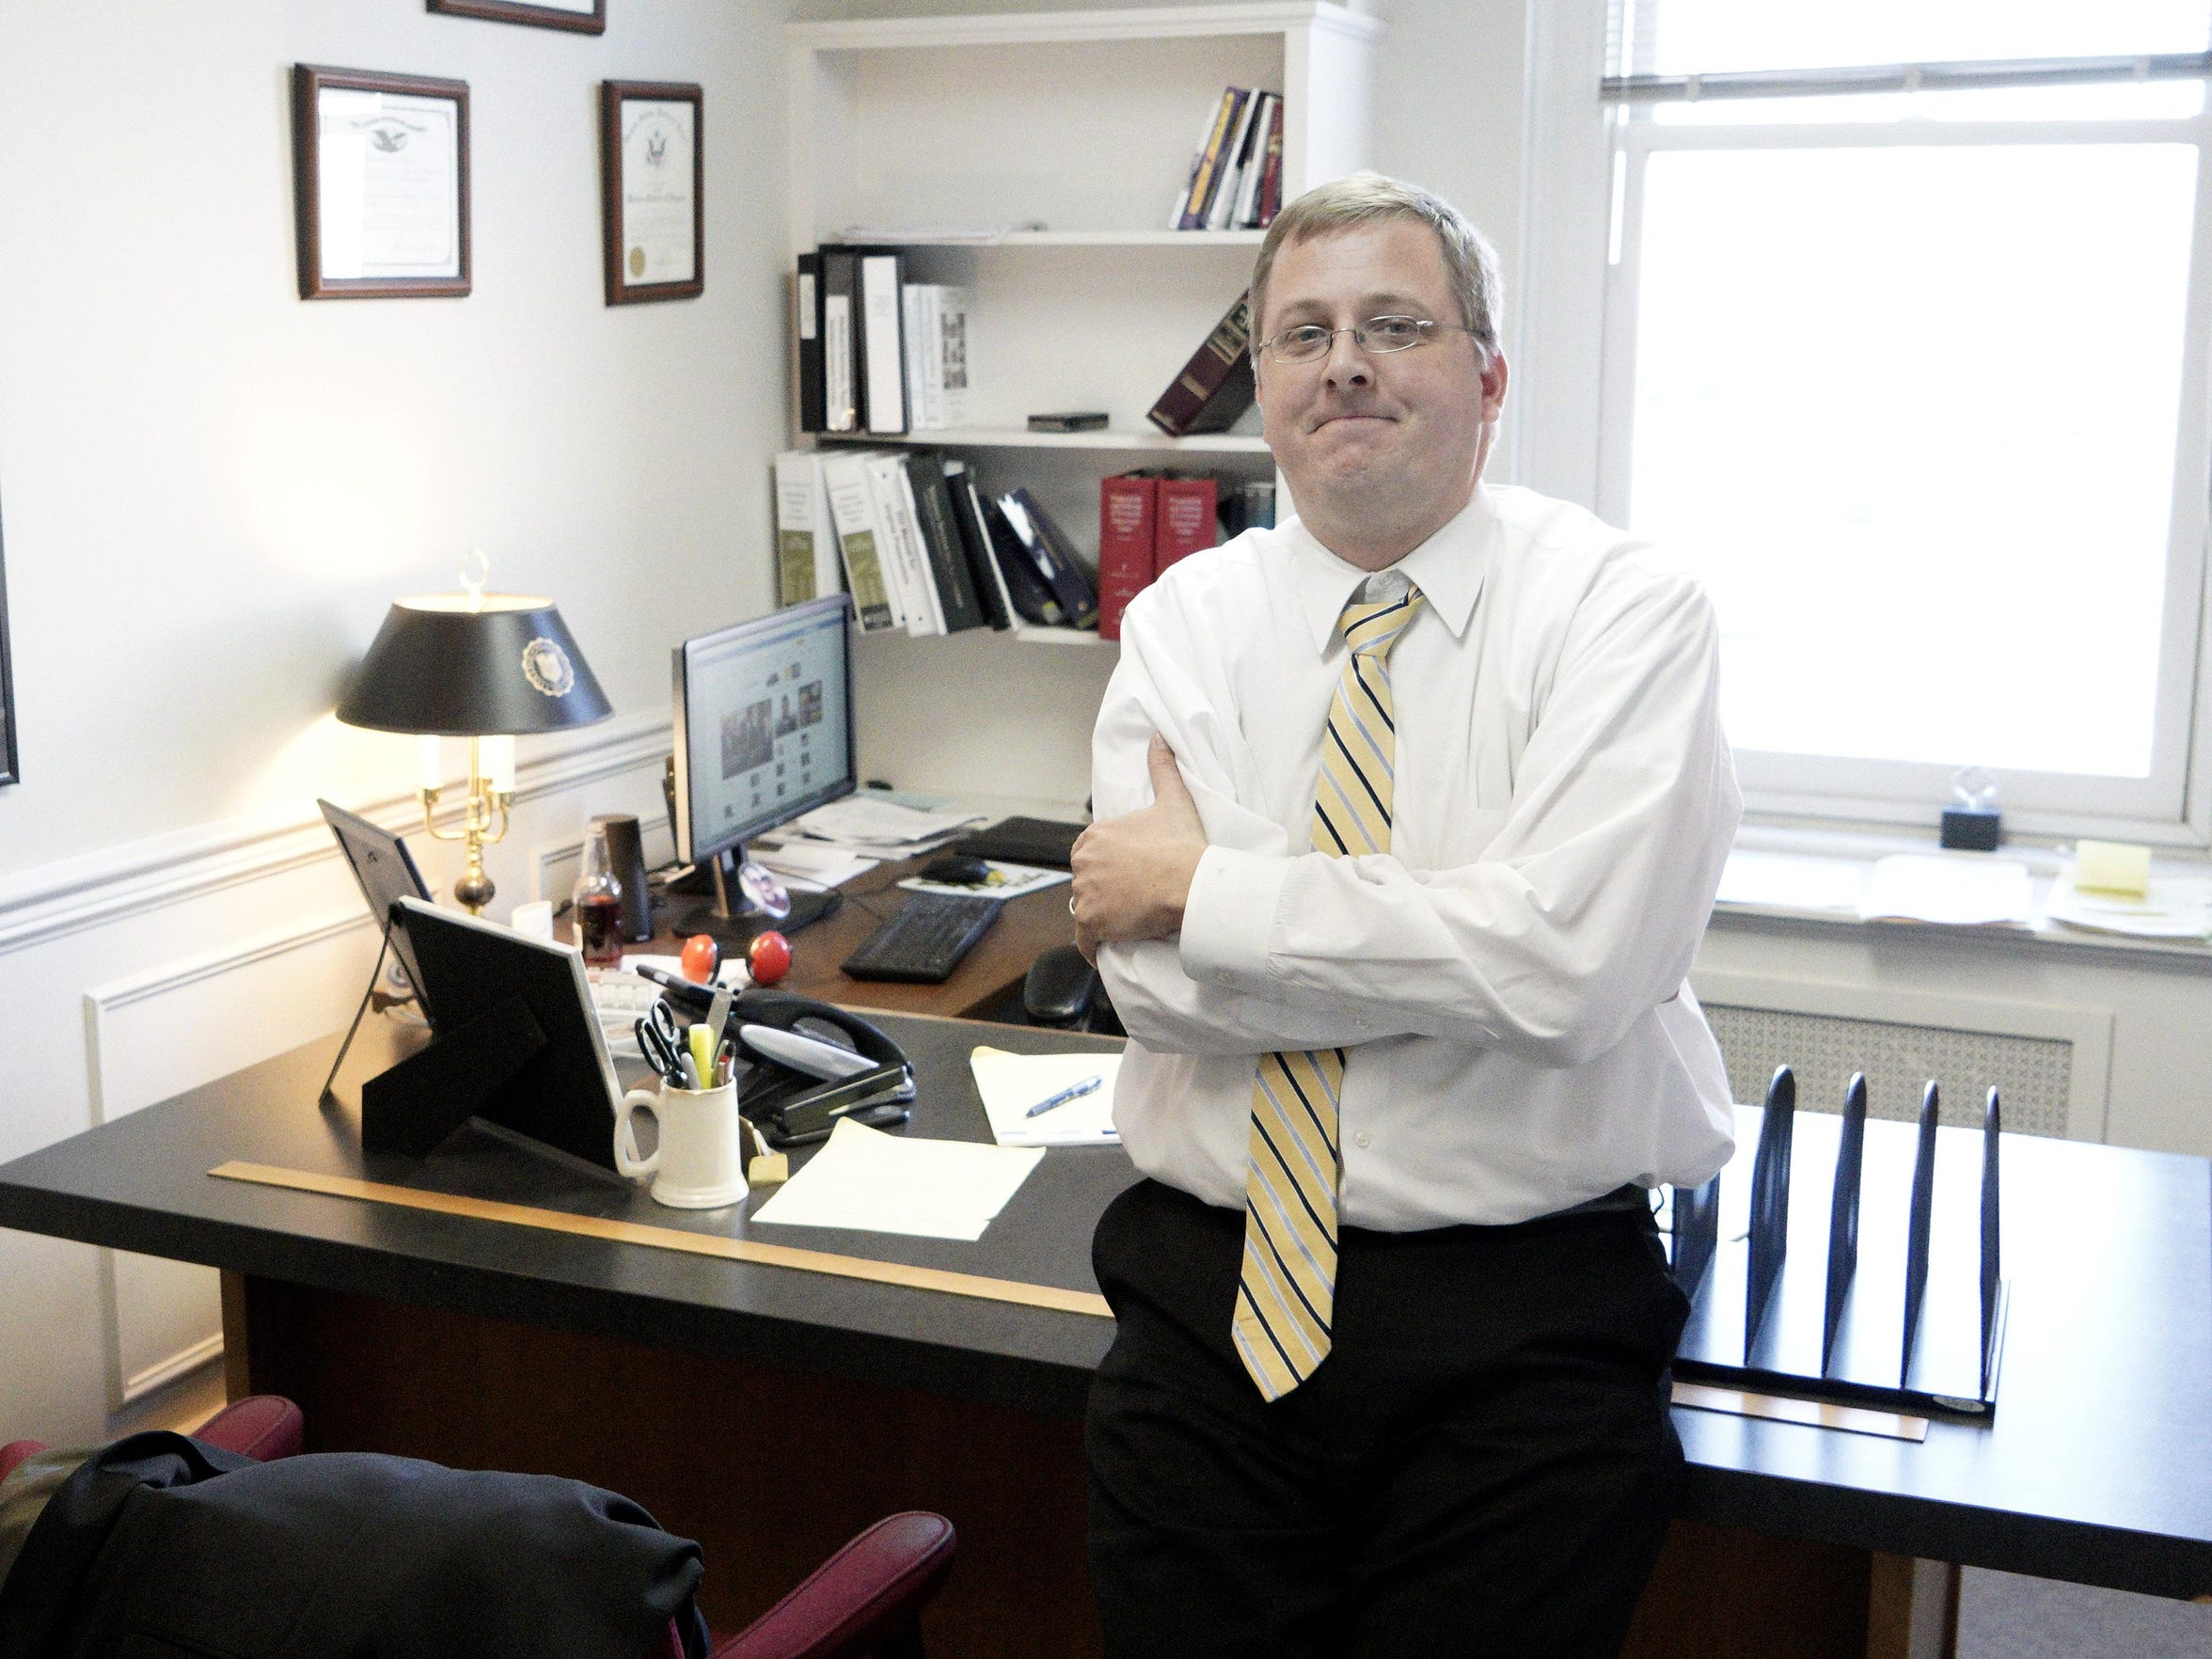 Attorney Tate Love is photographed in his office at